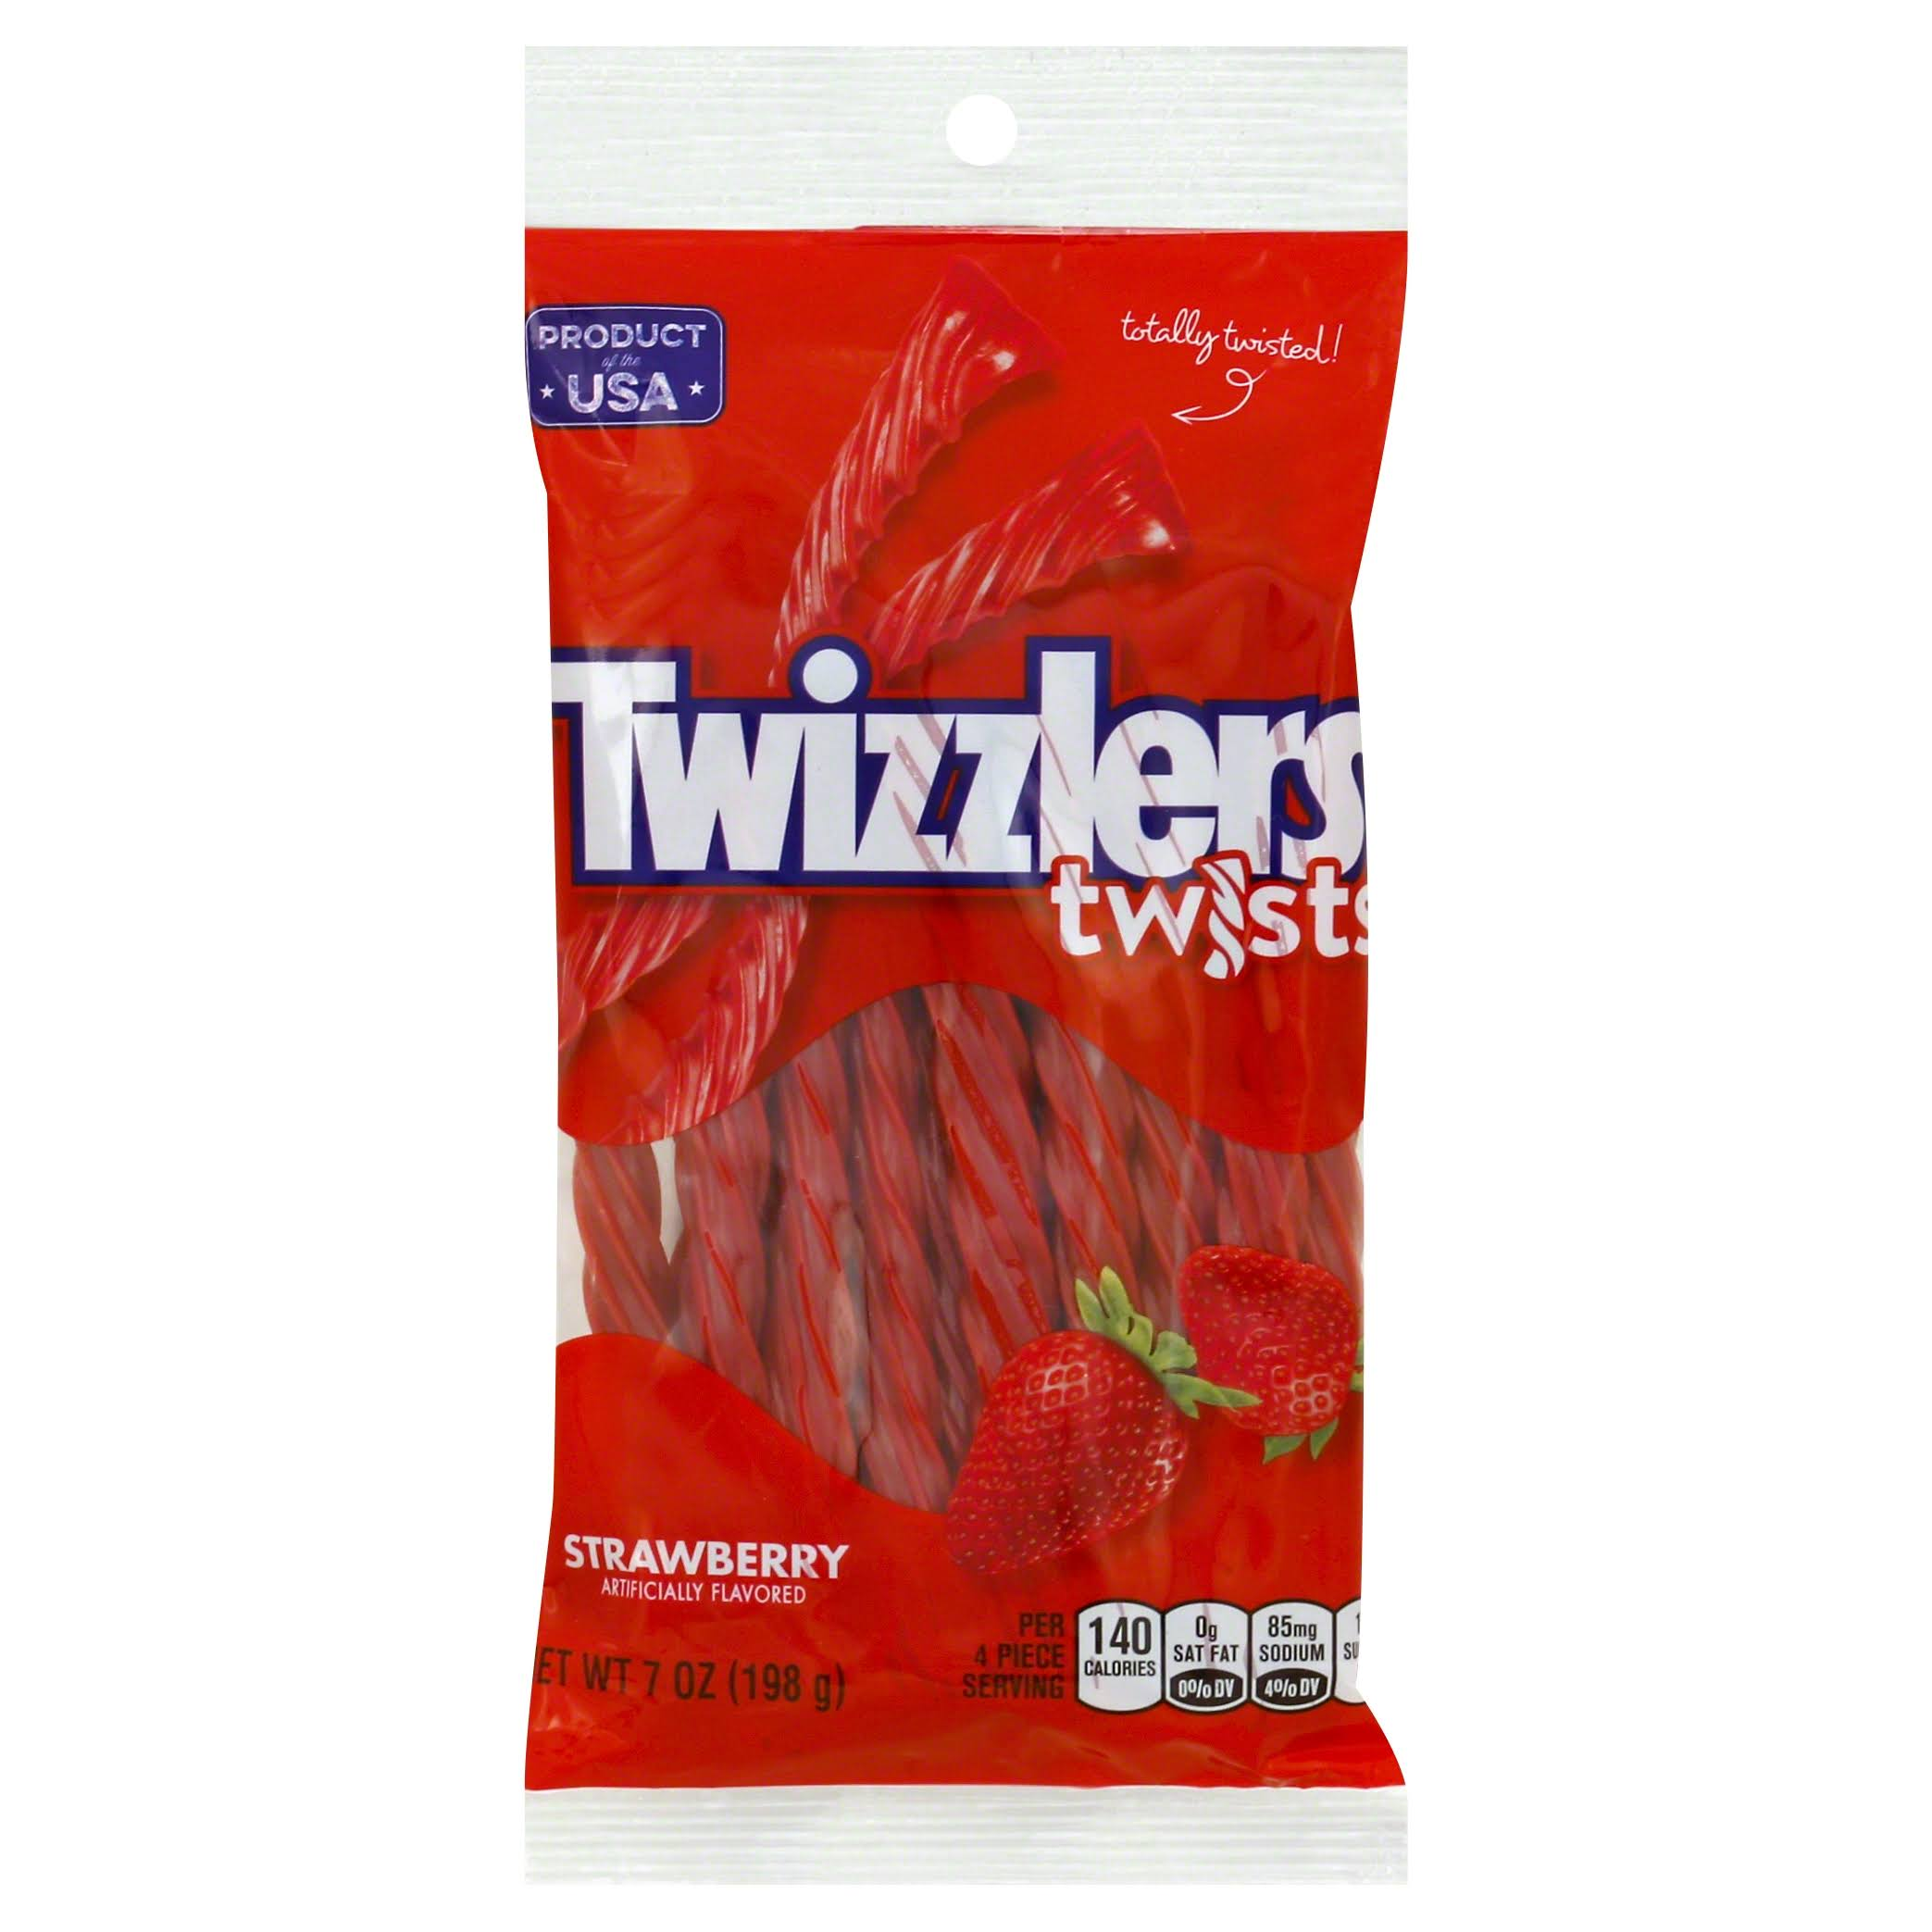 Twizzlers Twists - Strawberry, 198g